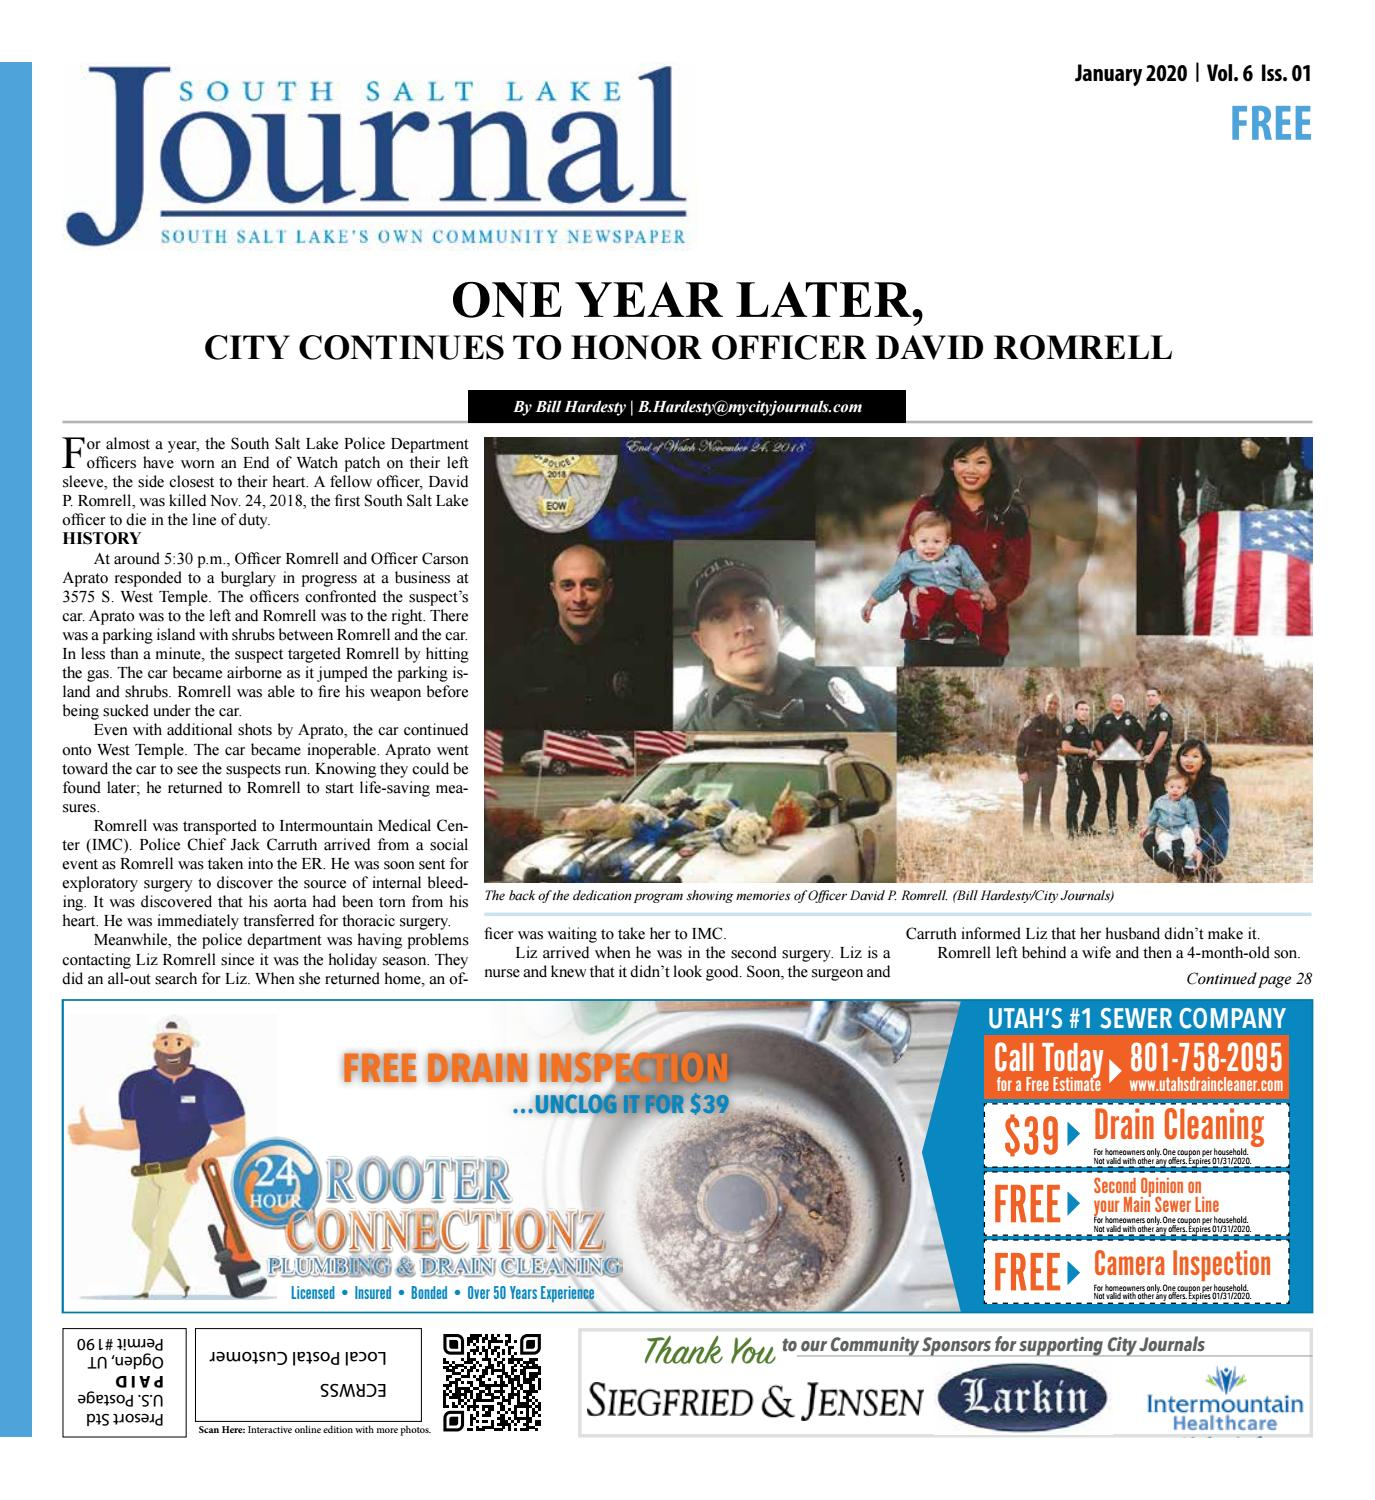 South Salt Lake City Journal January 2020 By The City Journals Issuu